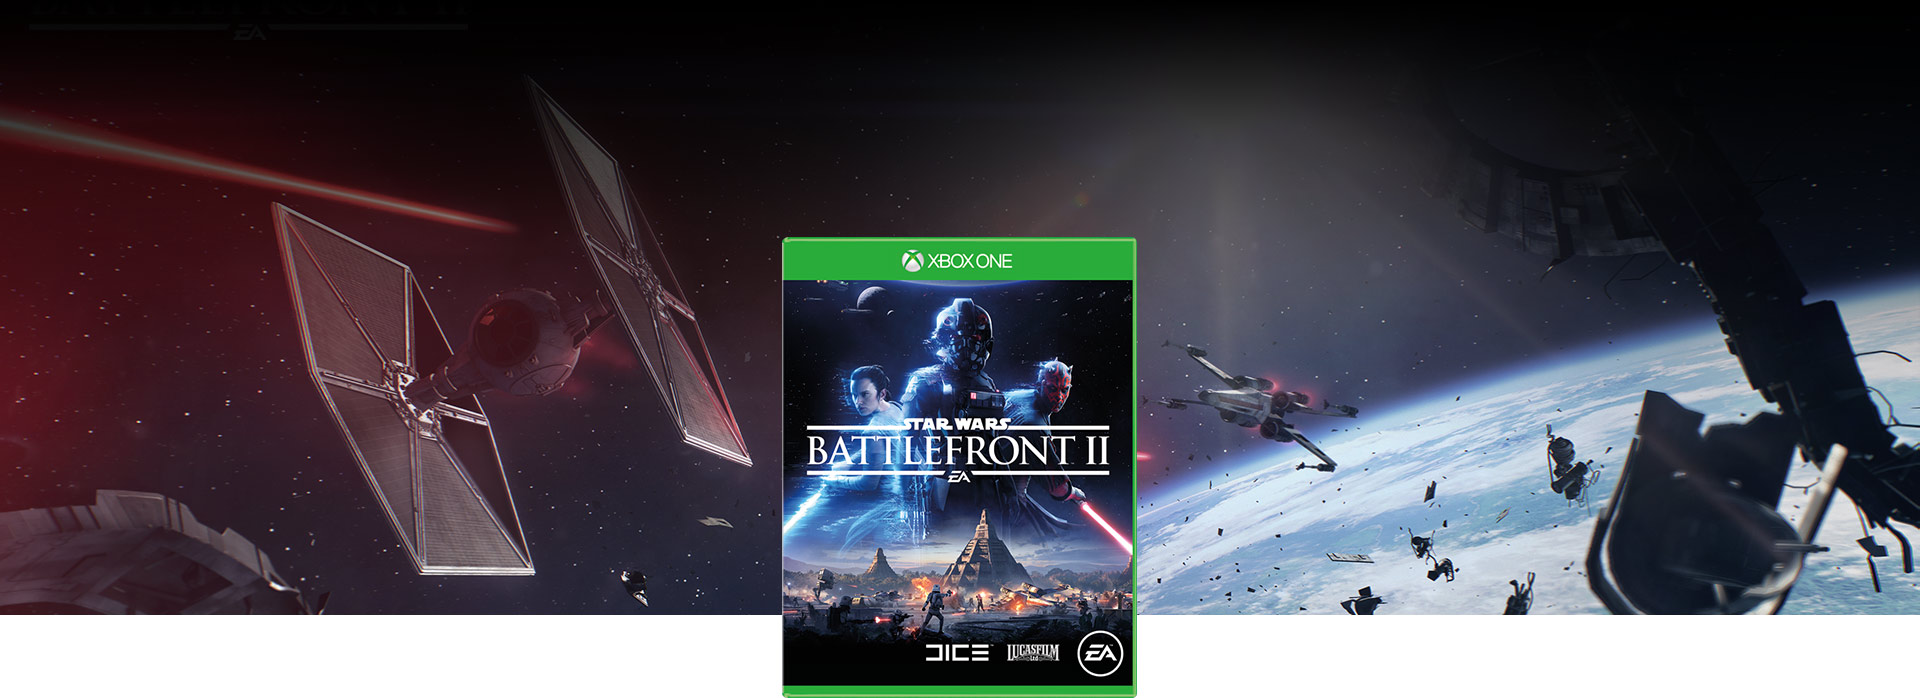 Star Wars Battlefront box shot and in the background an X-wing shoots at a TIE fighter in a galactic scale space battle